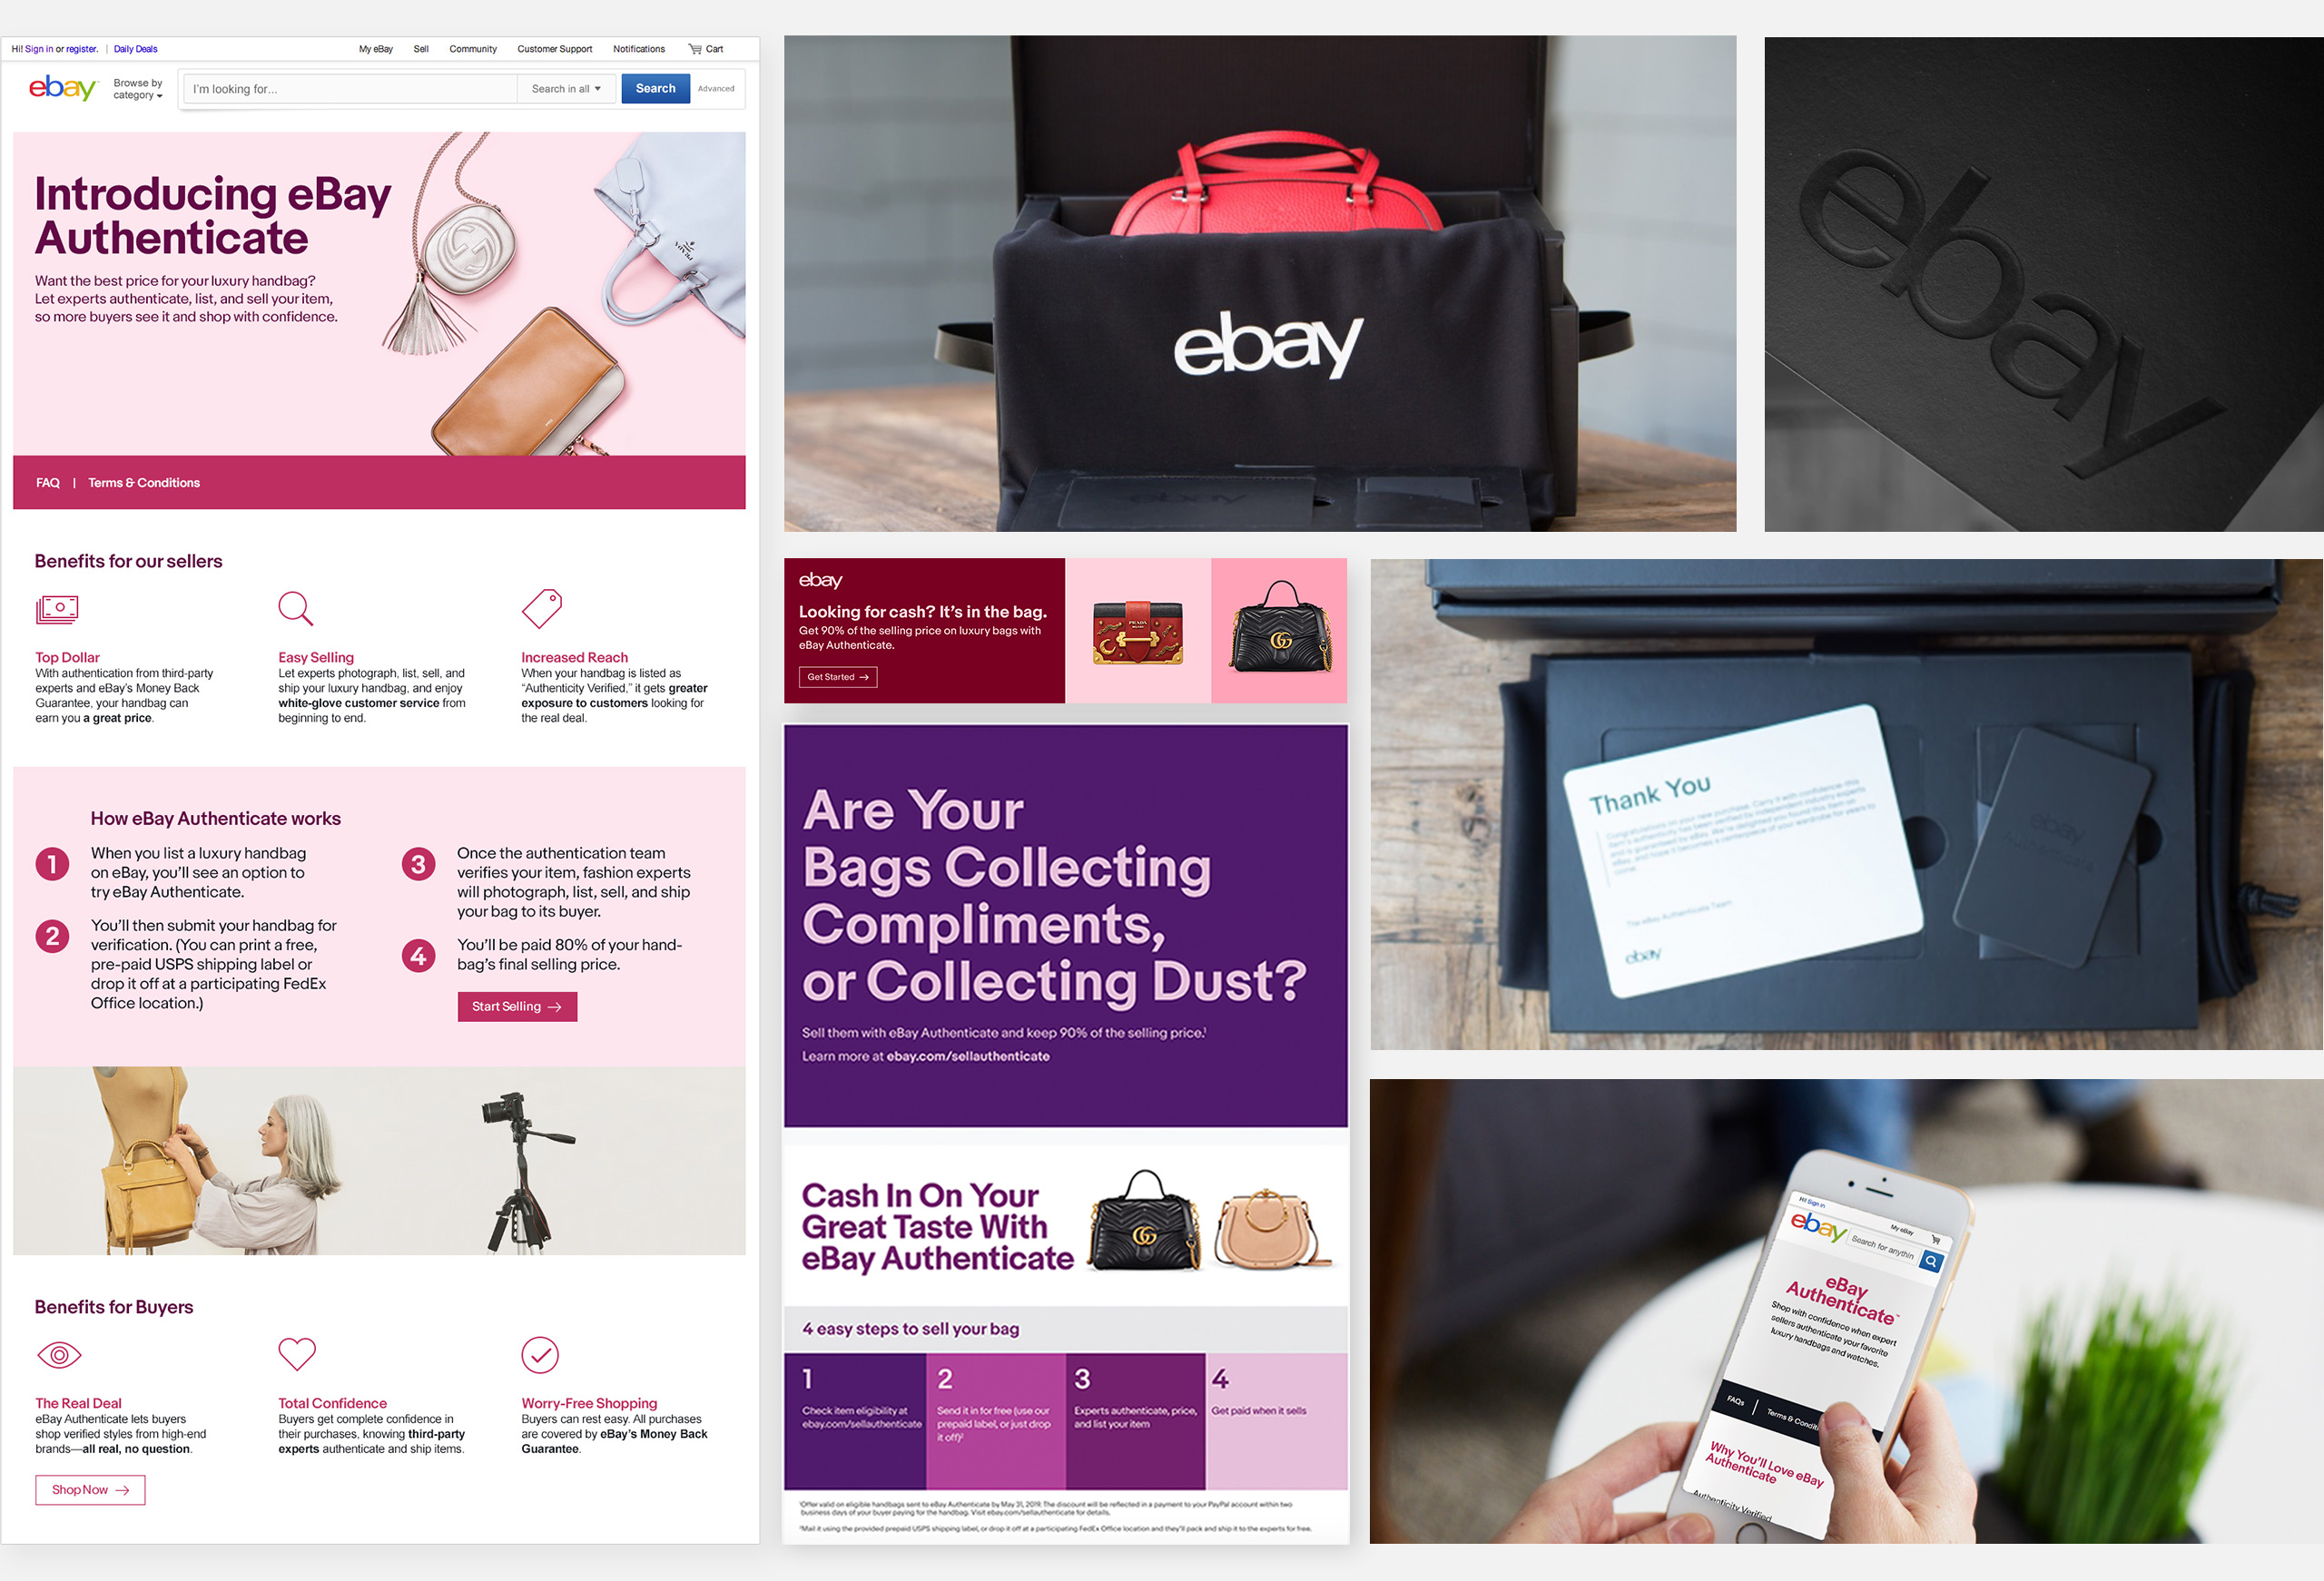 eBay Authenticate Assets